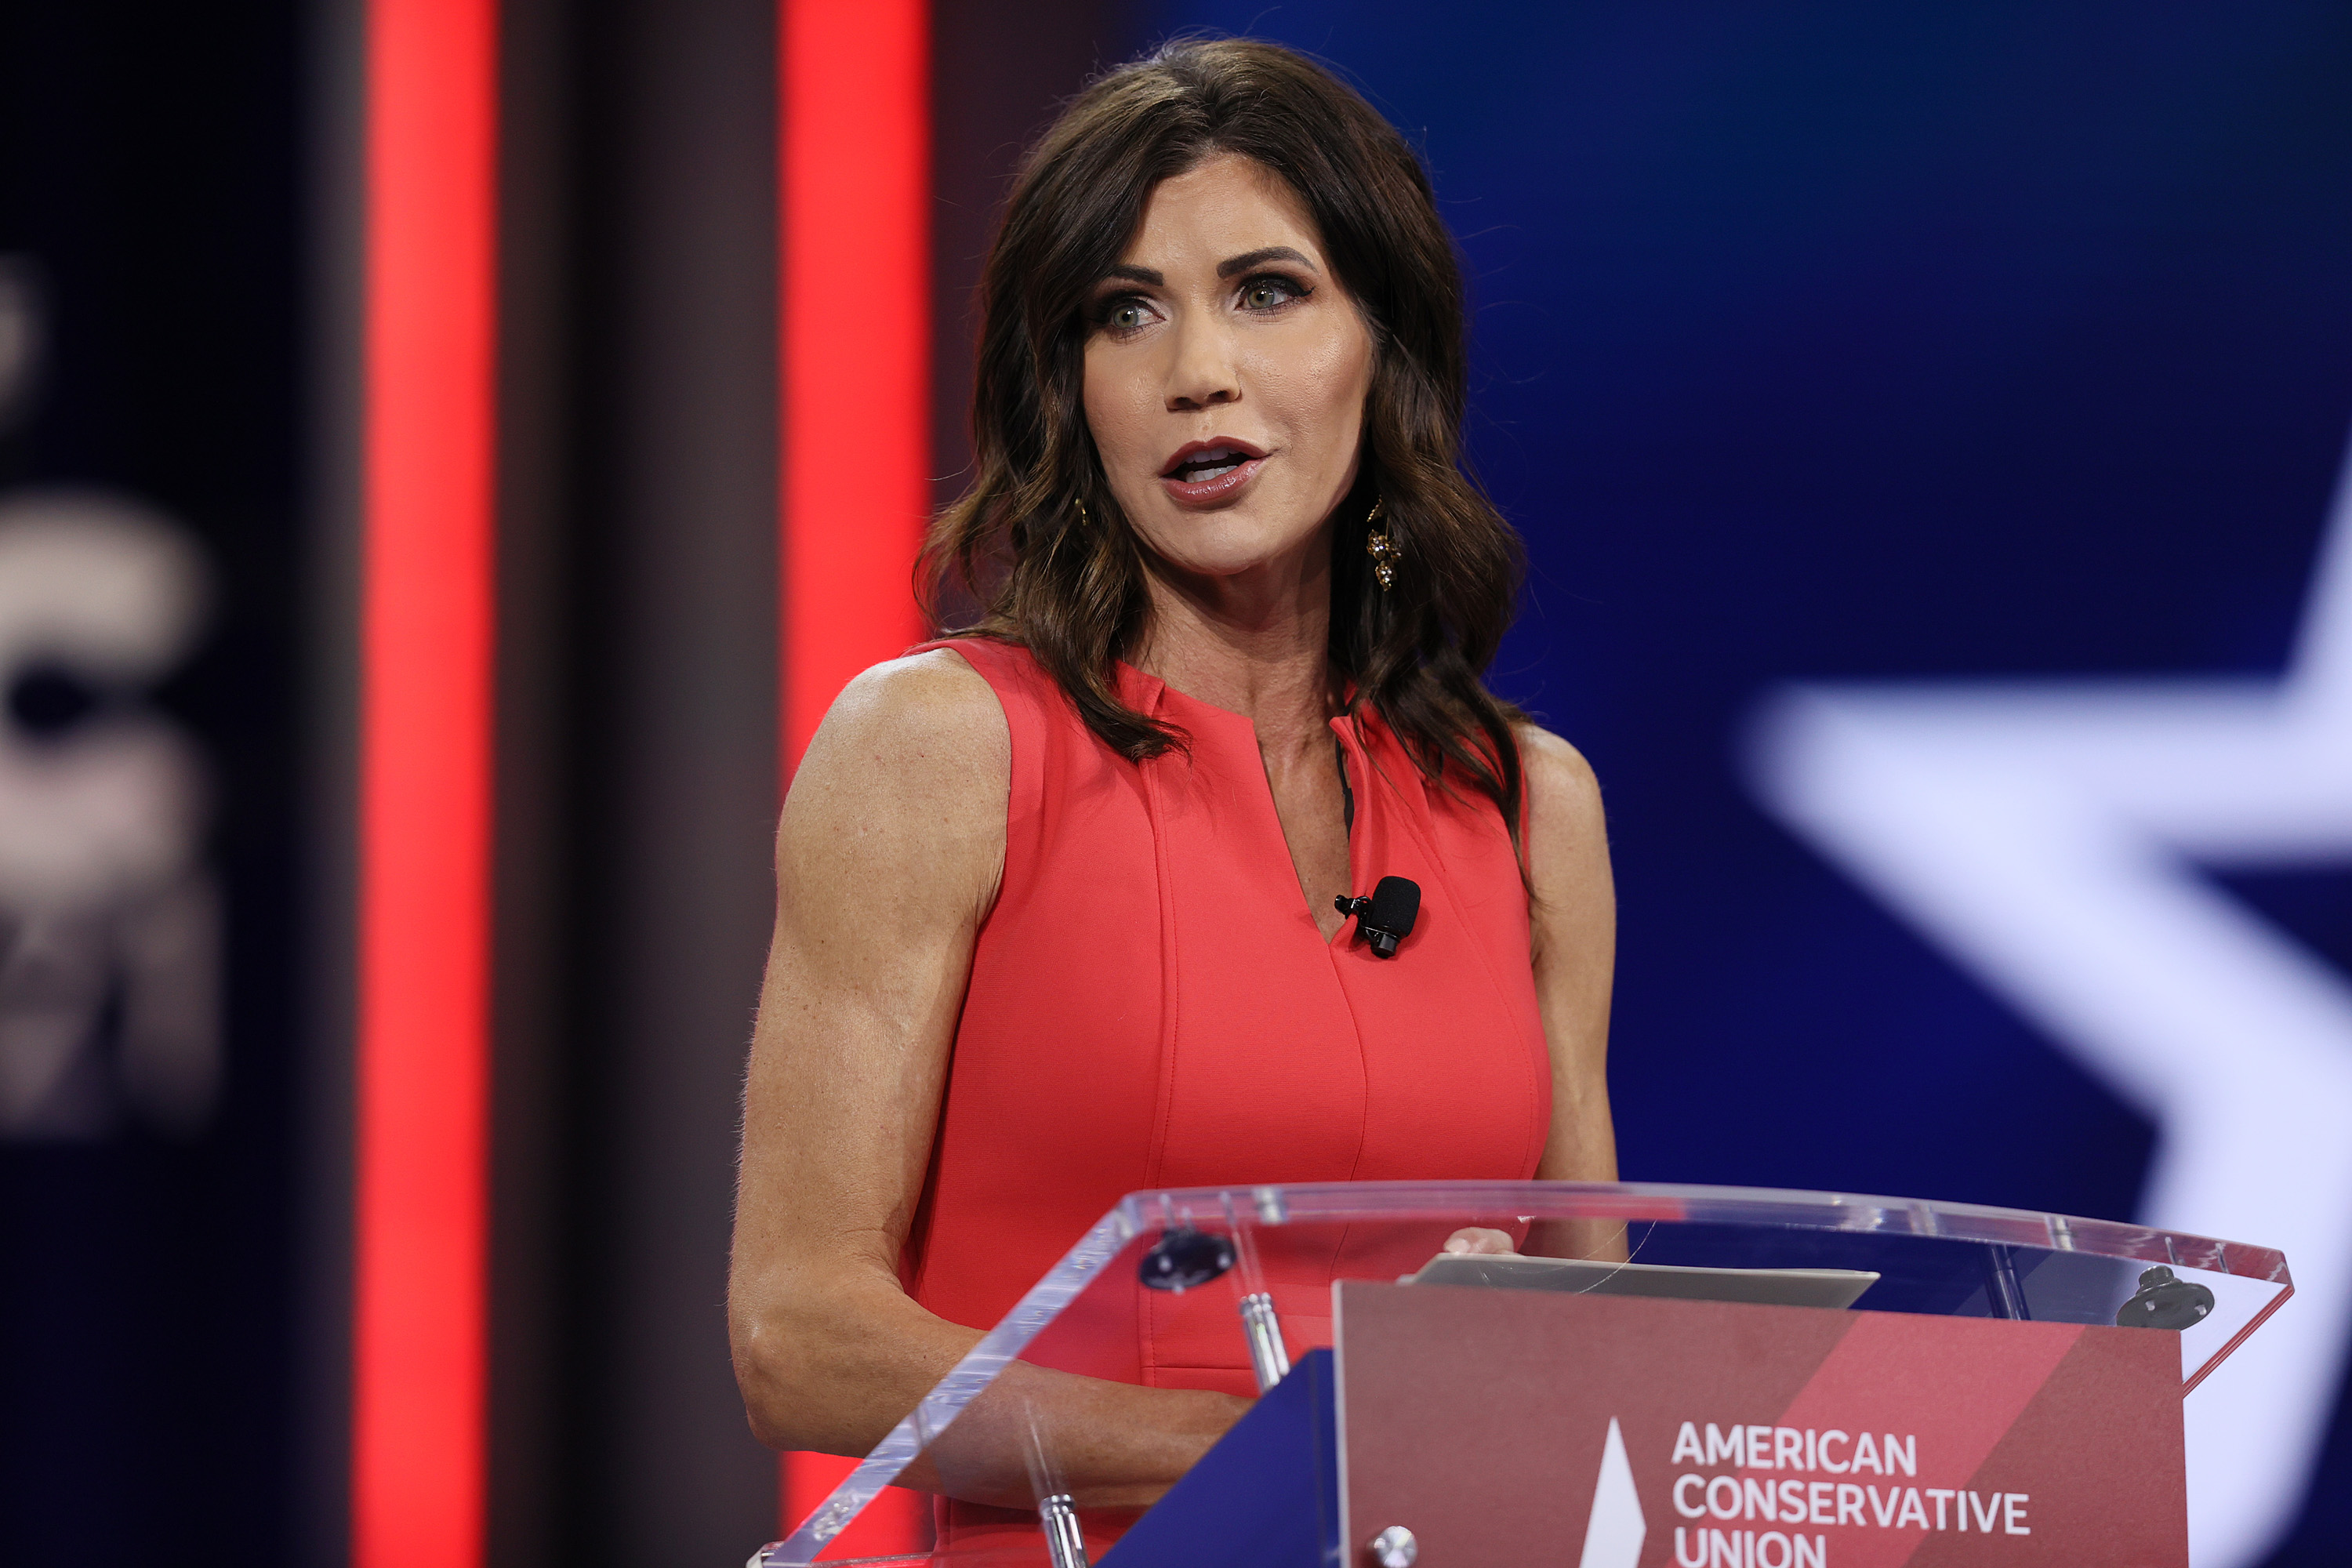 American Conservative Union Holds Annual Conference In Florida